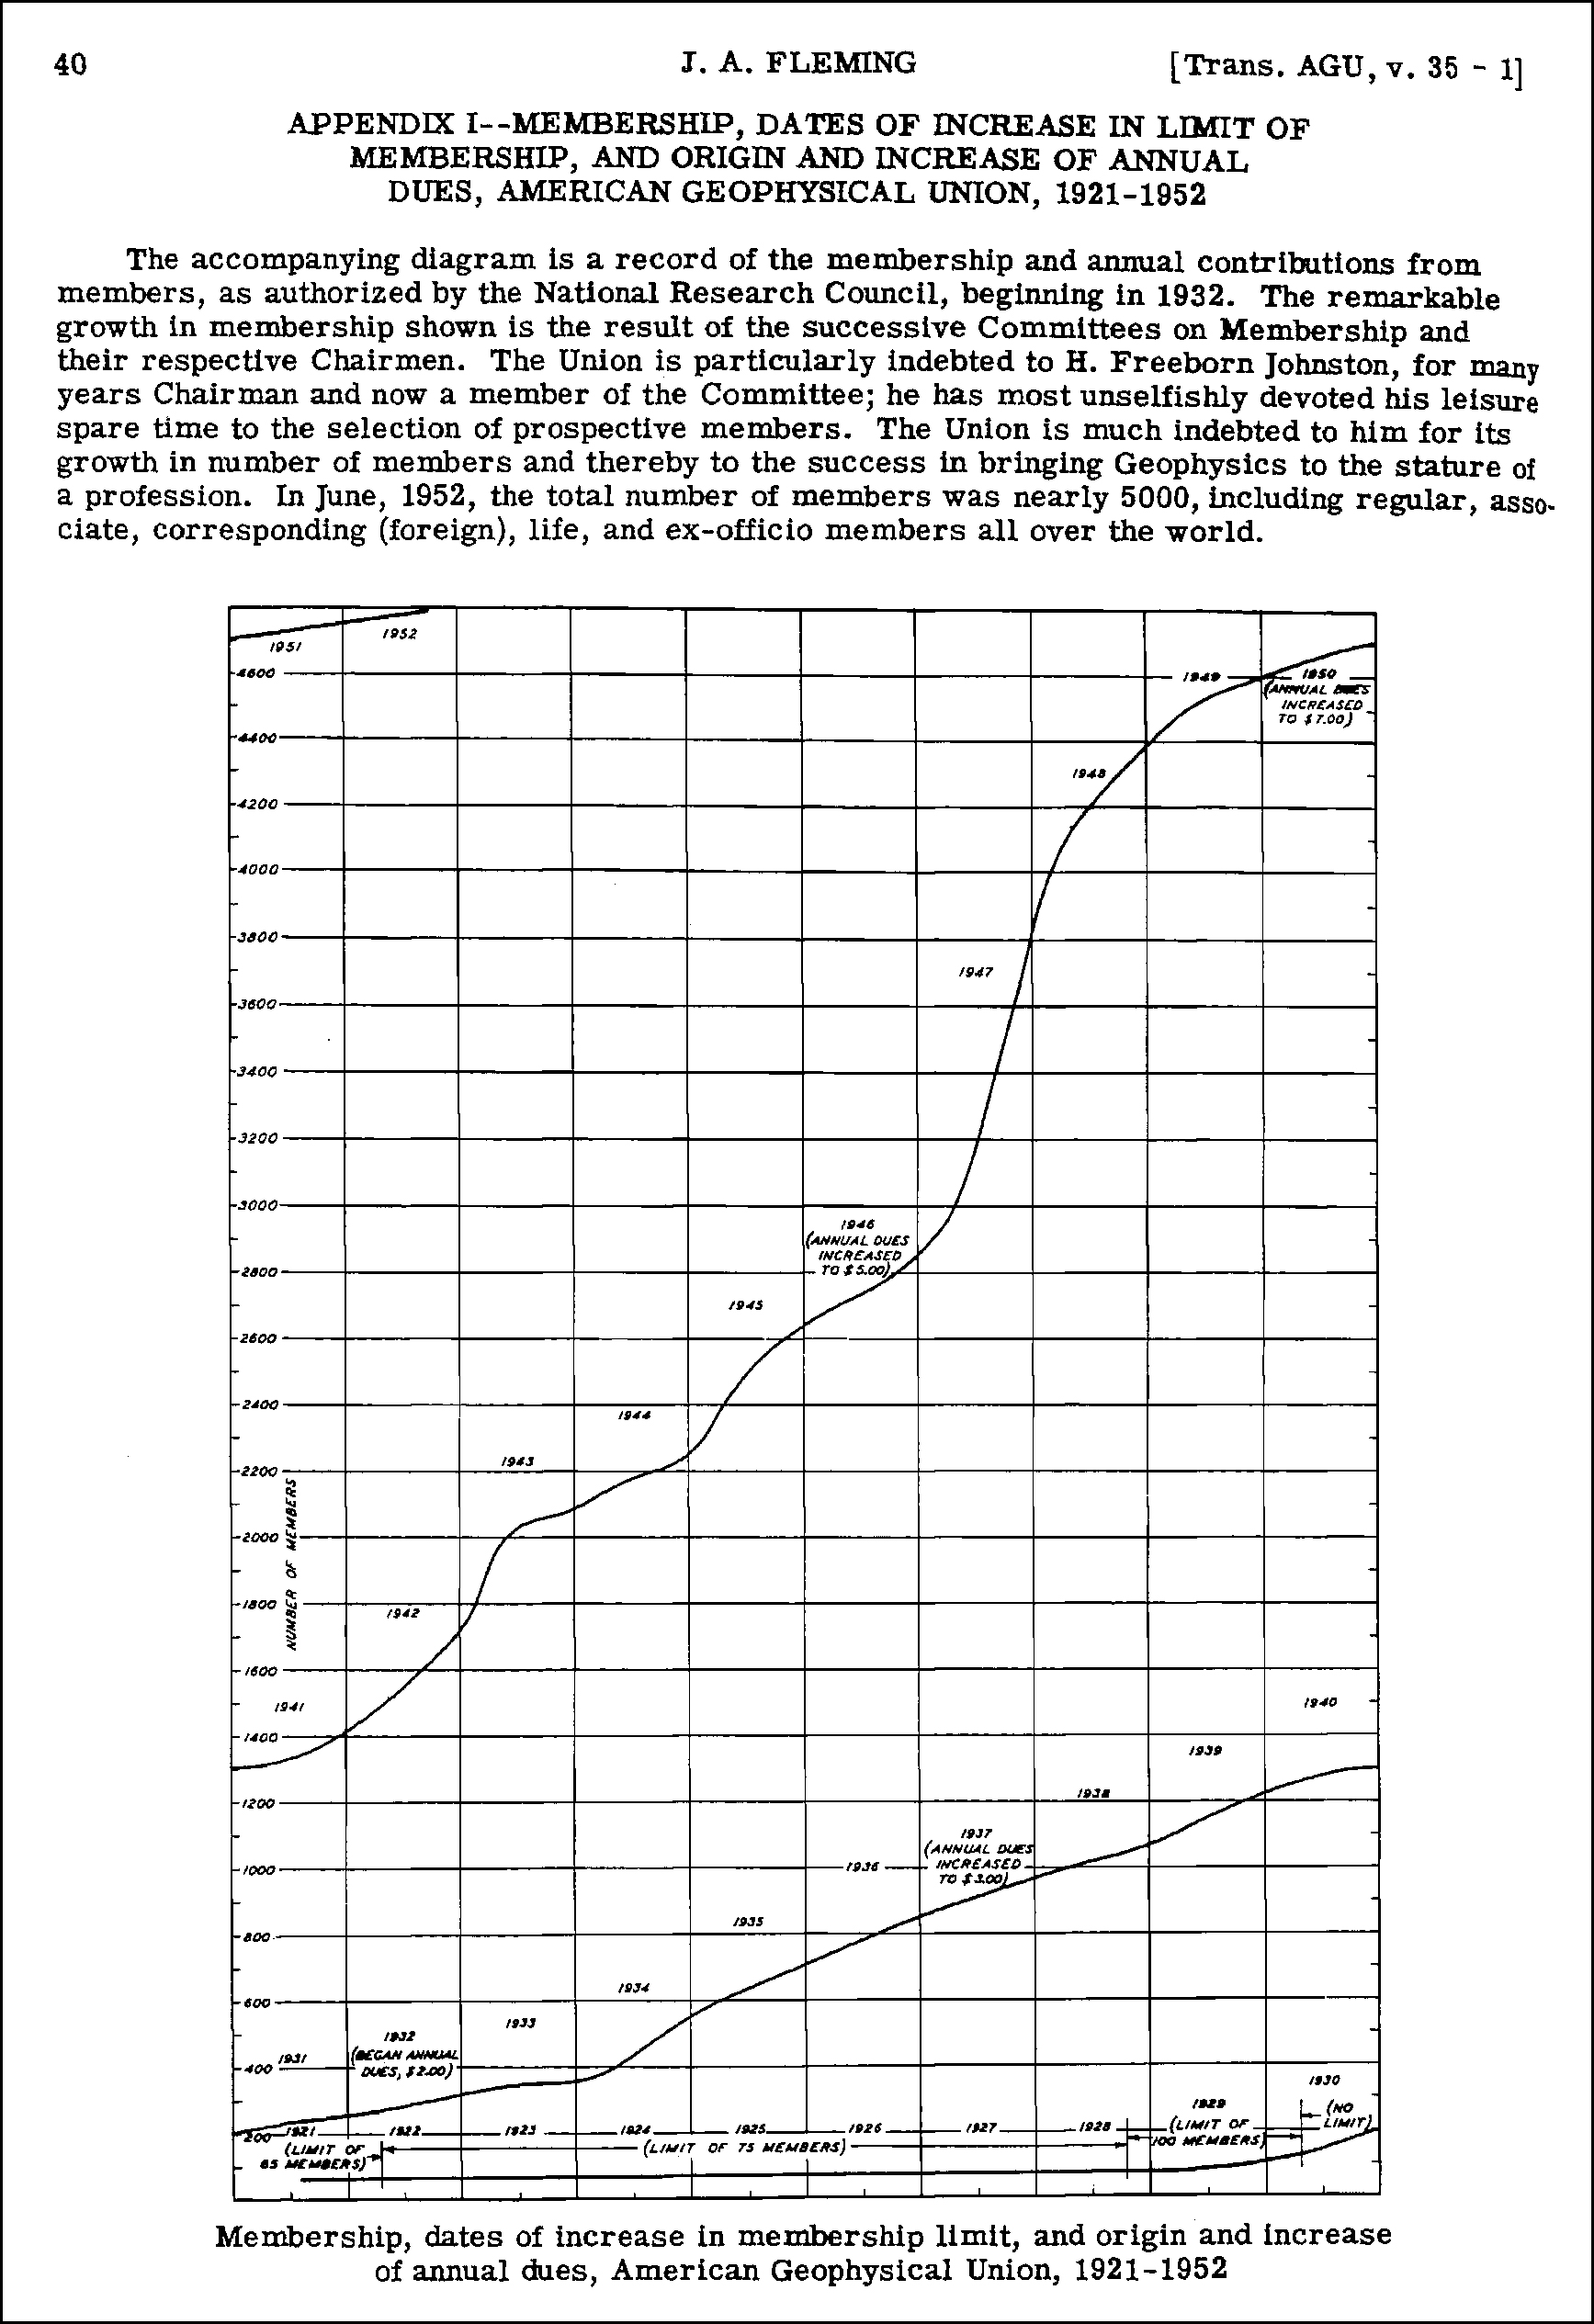 A chart showing AGU membership numbers growing from 65 in 1921 to nearly 5,000 in 1952.